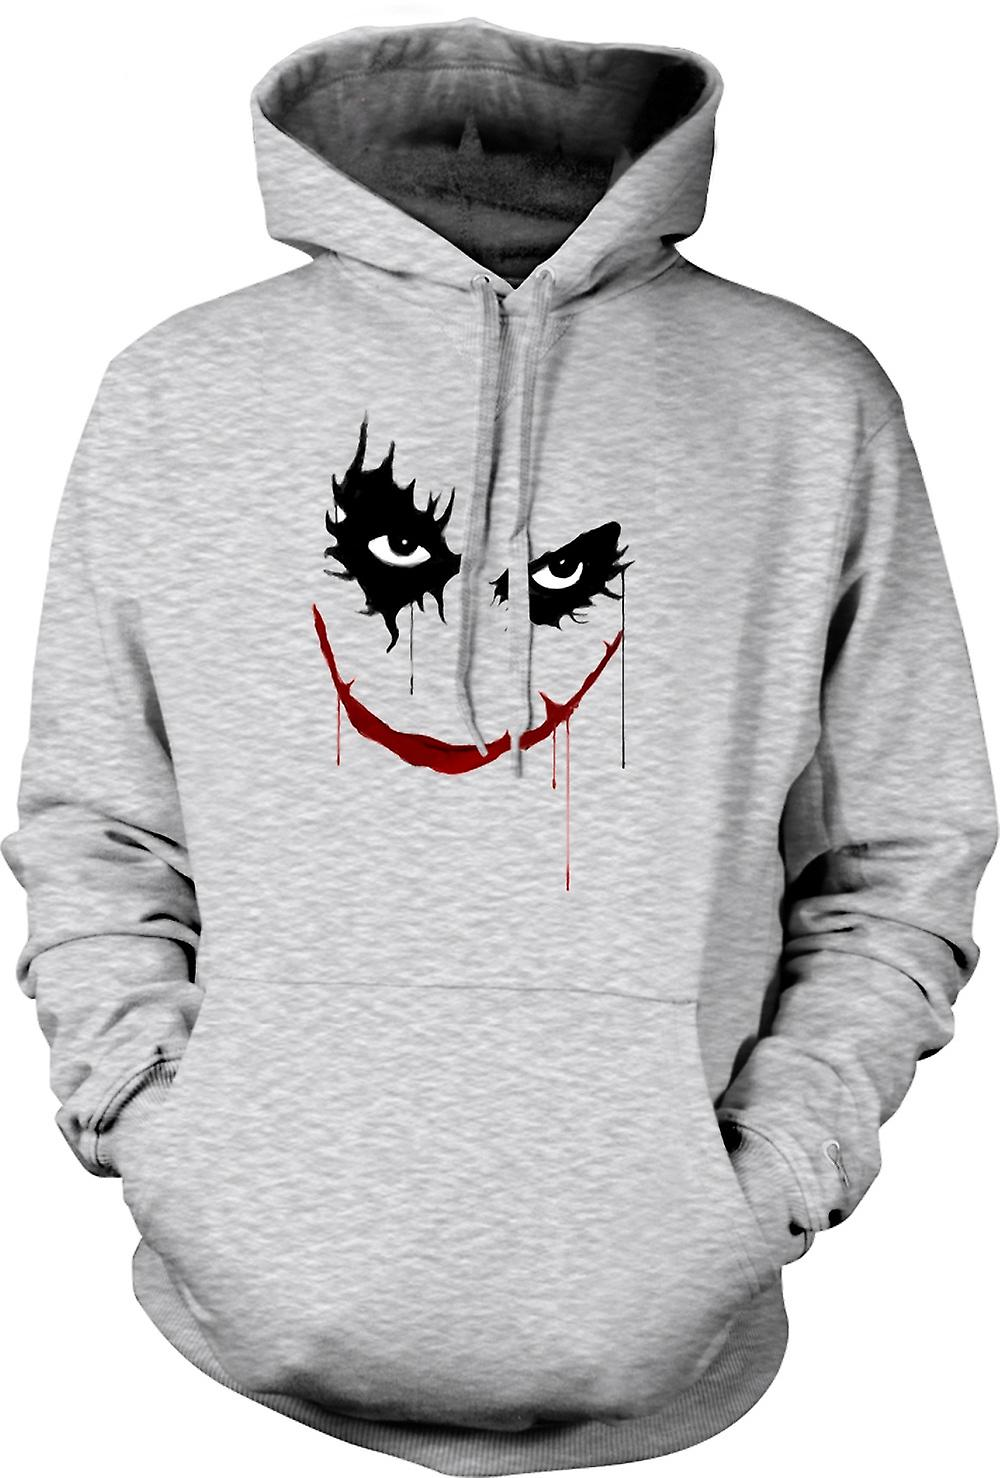 Herren Hoodie - Joker Lächeln - Batman - Pop-Art